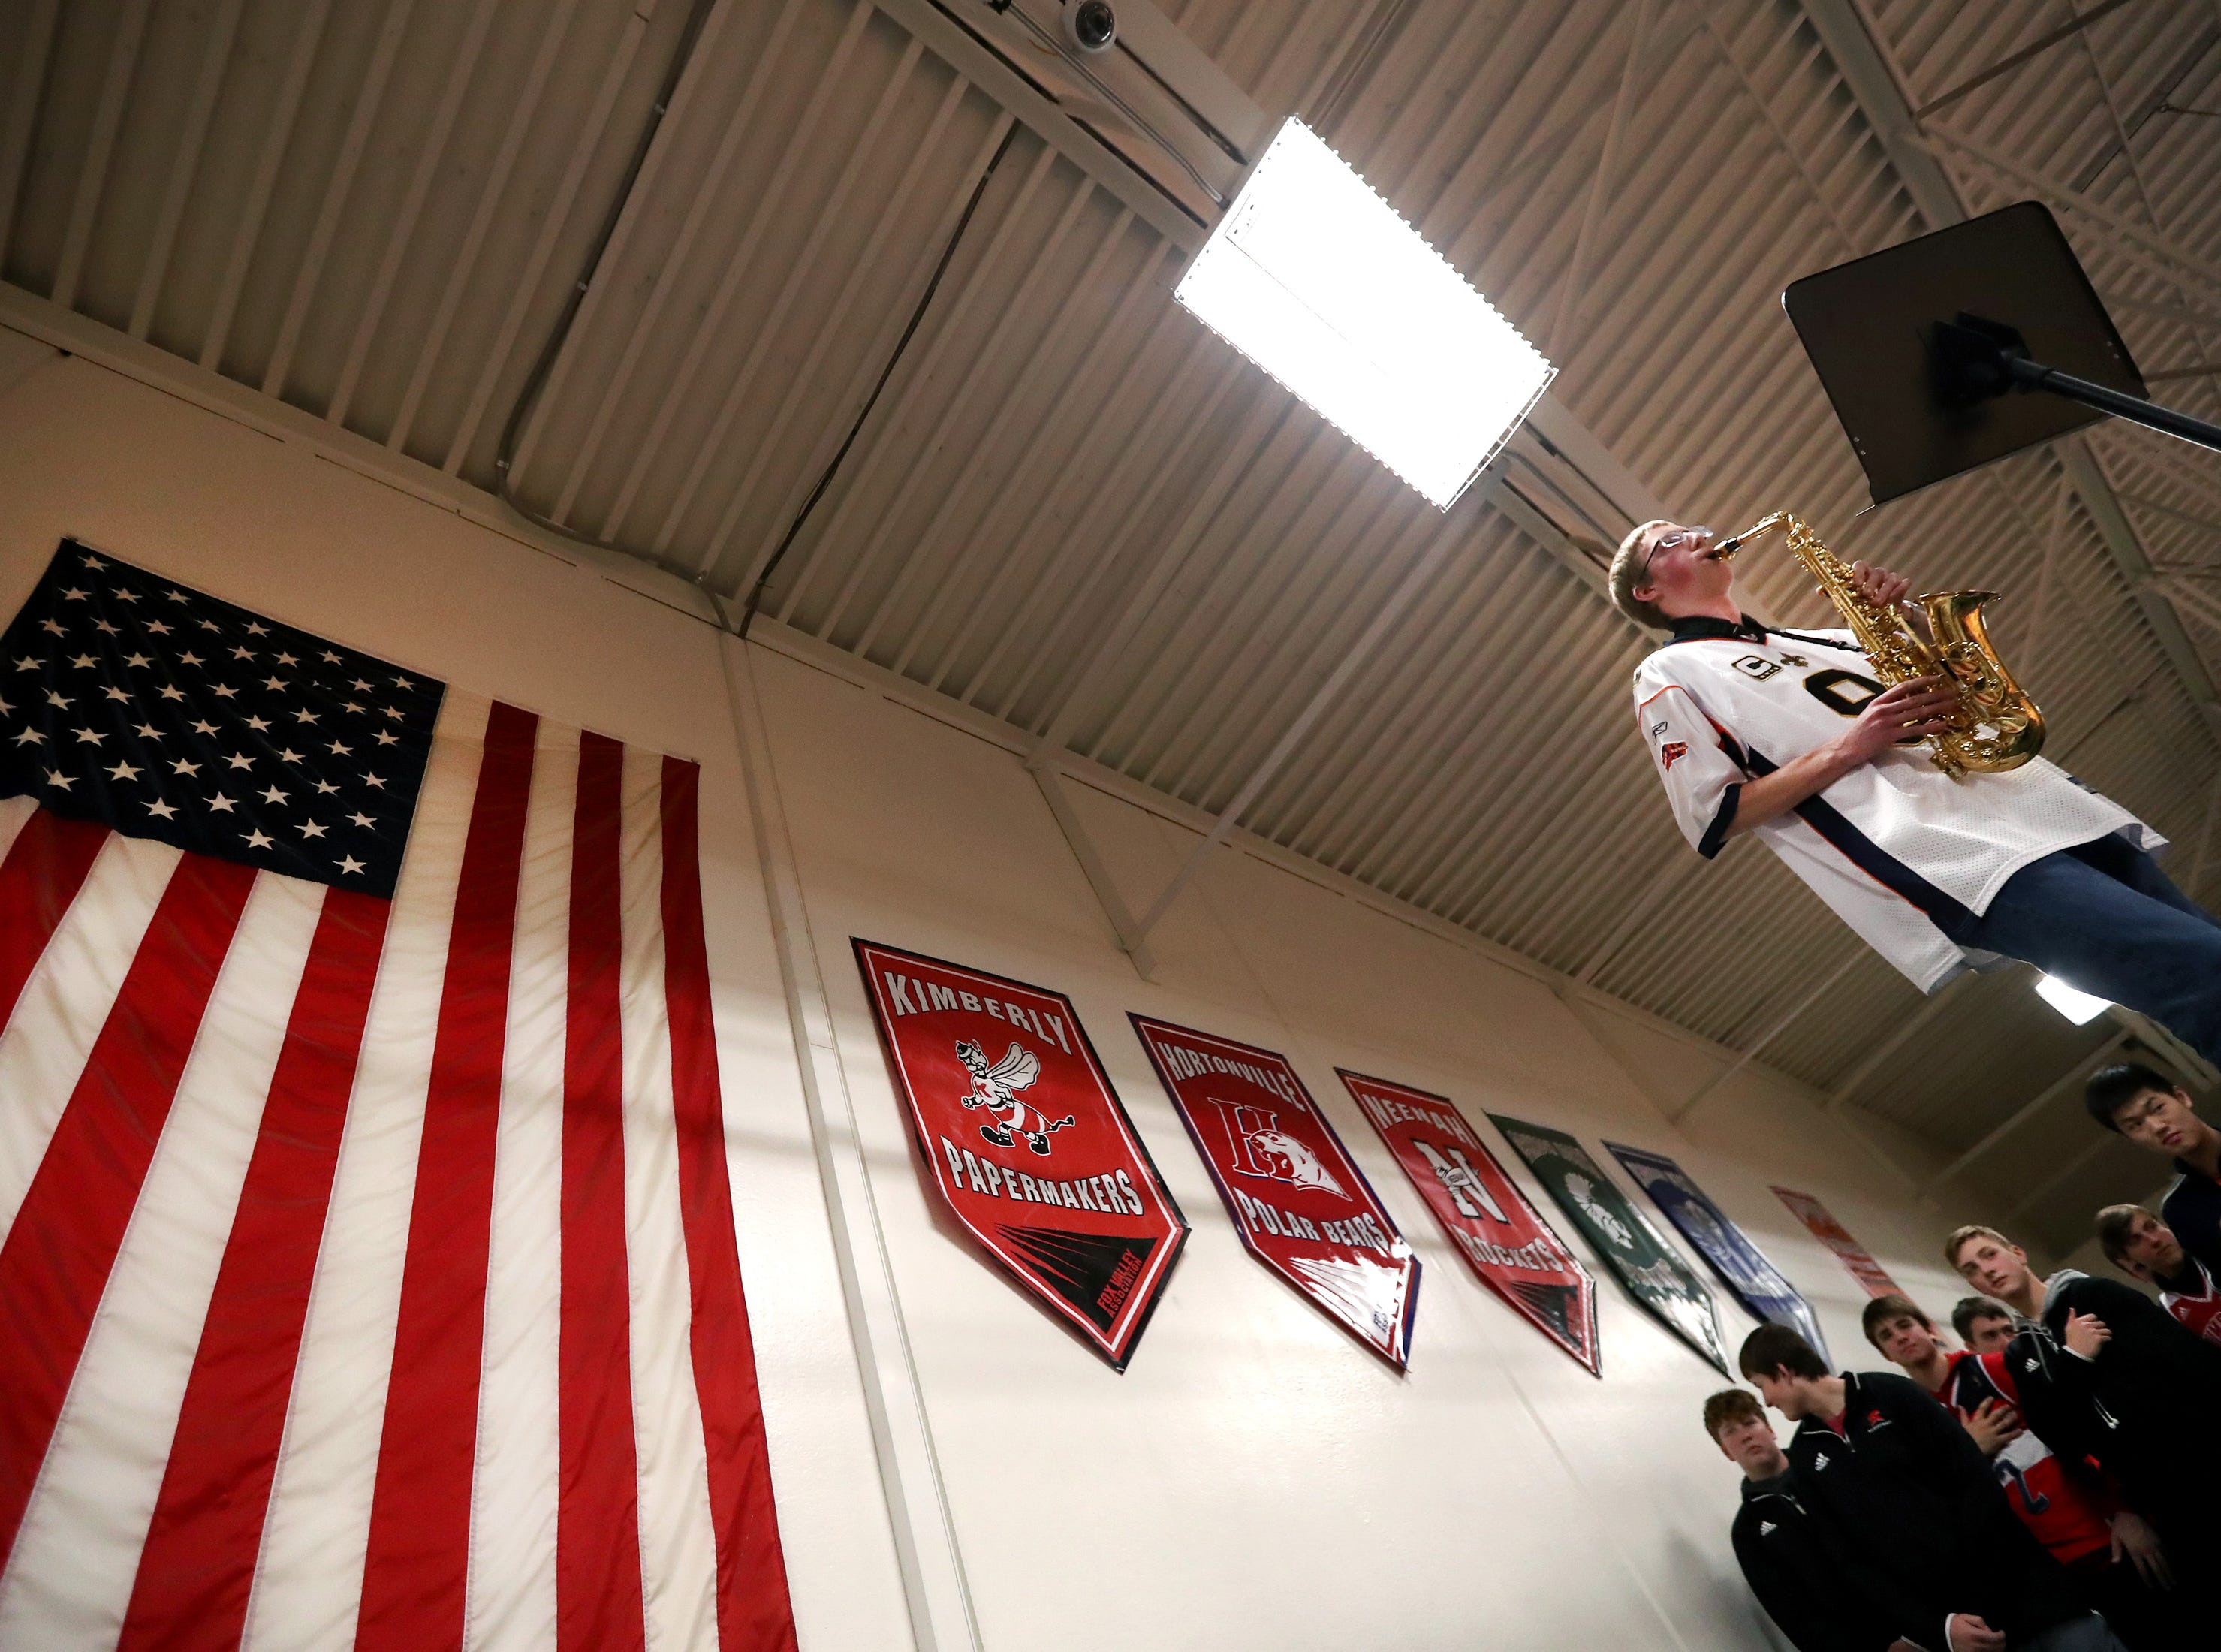 Collin Van Cuyk, a senior at Kimberly High School, performs the National Anthem on the Alto Sax before their game against Kaukauna High School Friday, Dec. 7, 2018, in Kimberly, Wis.